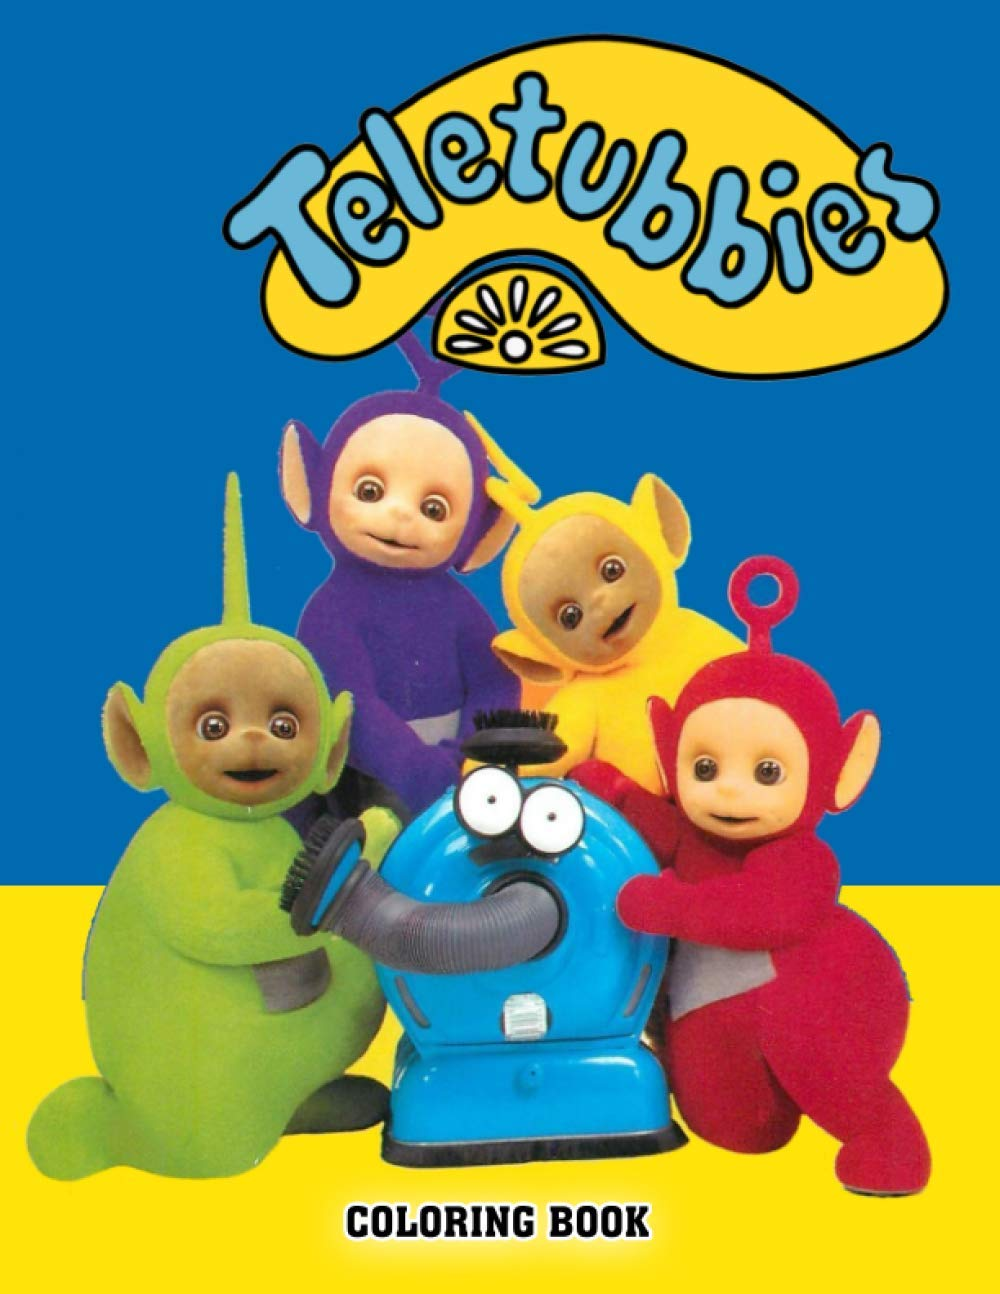 Amazon Com Teletubbies Coloring Book Awesome Illustrations Coloring Books Teletubbies Coloring Books For Kids And Adults 9798691362194 Martin Mcott Books